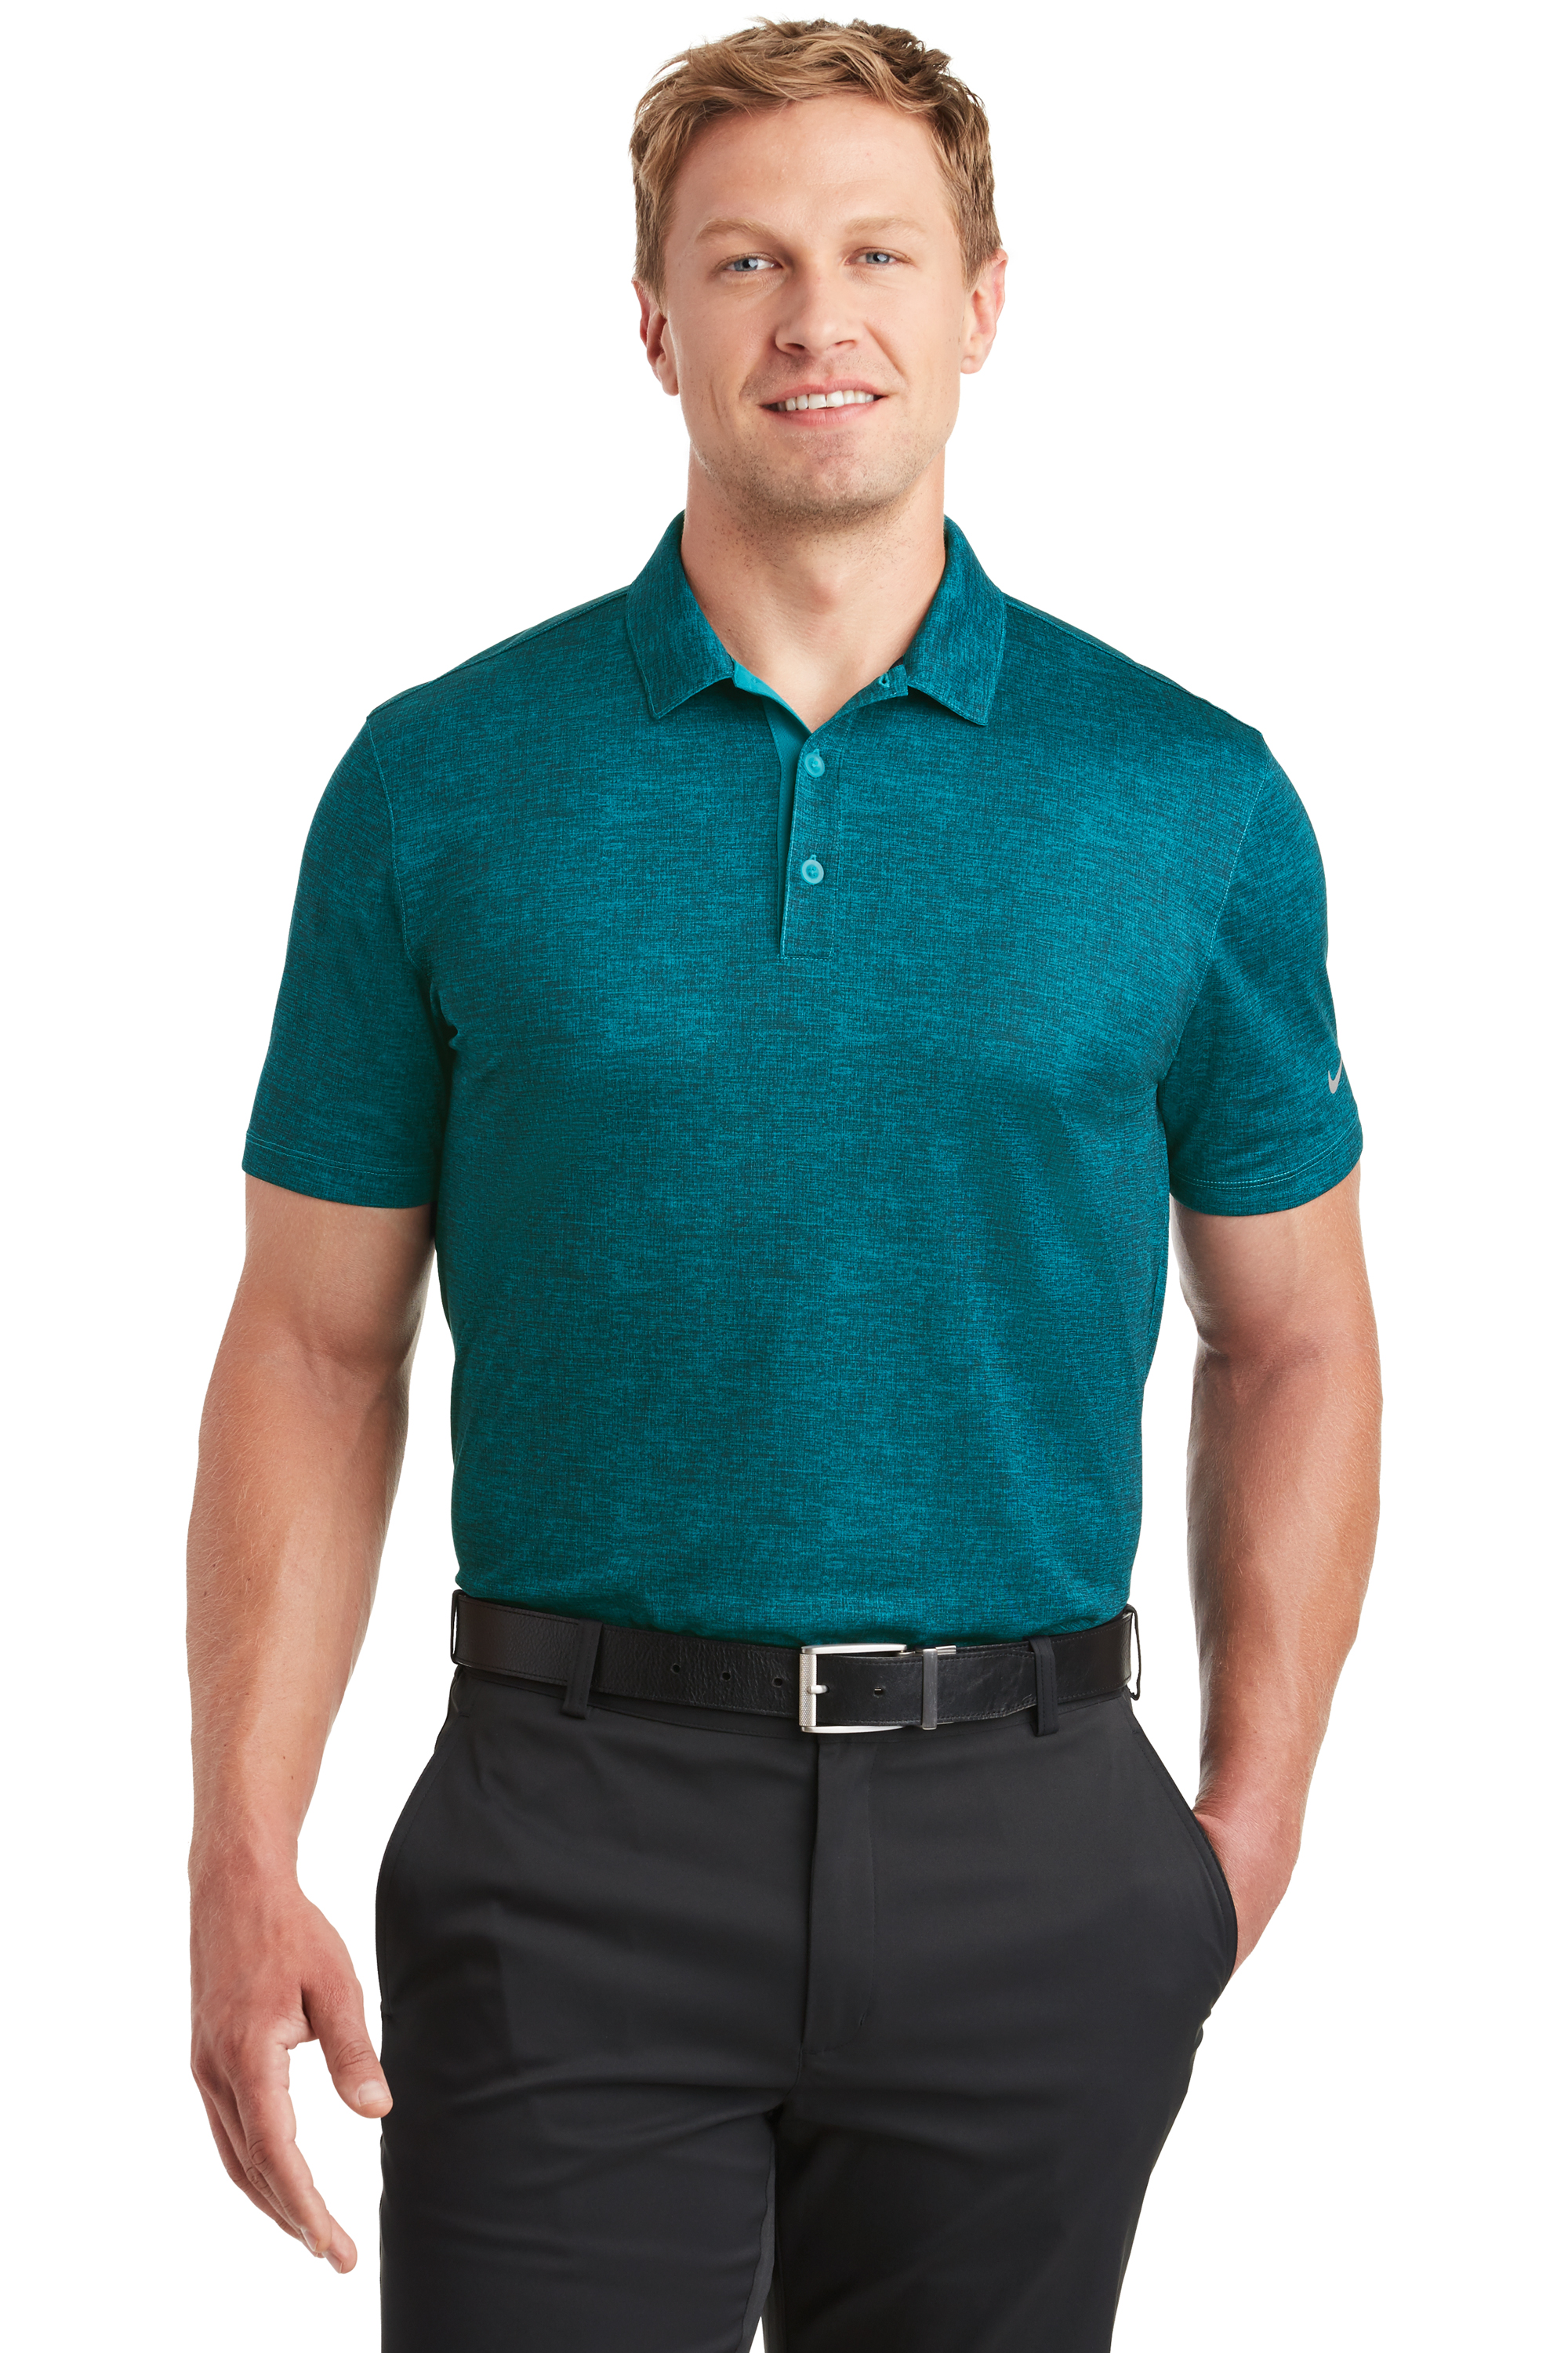 4b13ee1f0ee68 ... Dri-FIT Crosshatch Polo. 838965. Nike Blustery/Navy; Nike ...